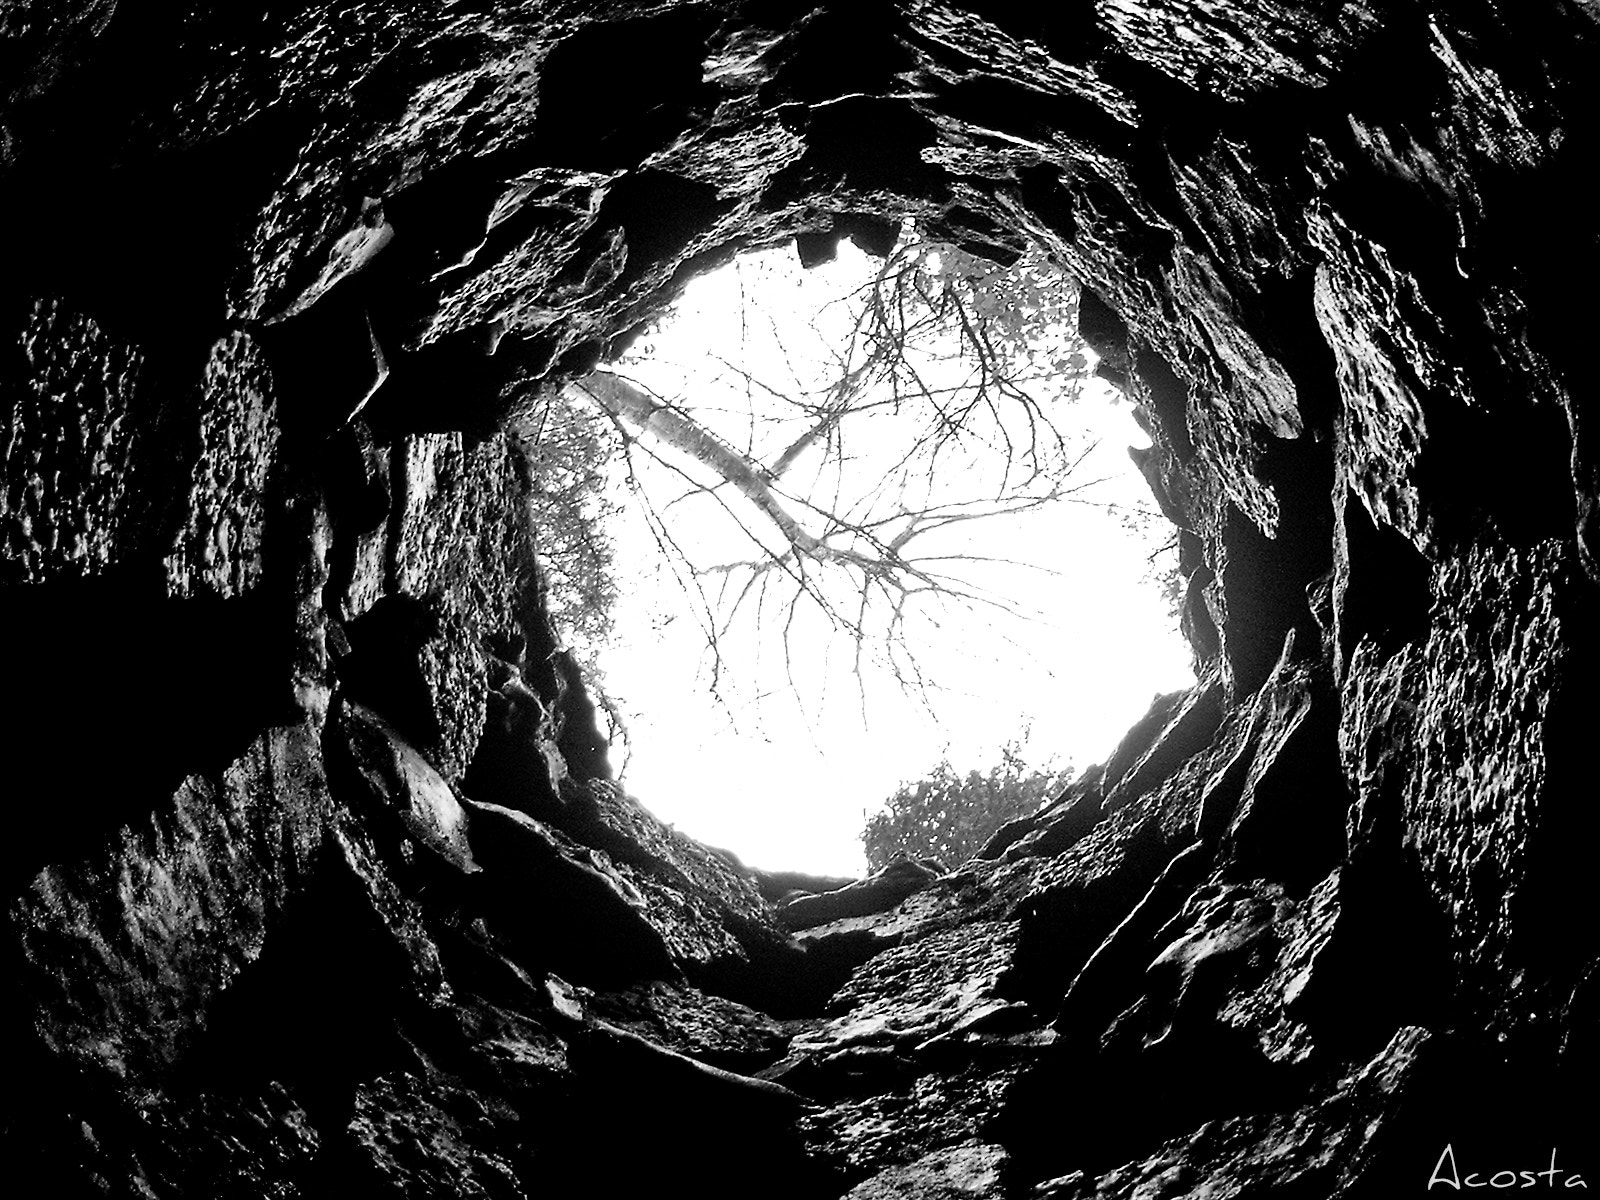 Photograph Saliendo del agujero.../out of the hole... by Alicia Acosta on 500px